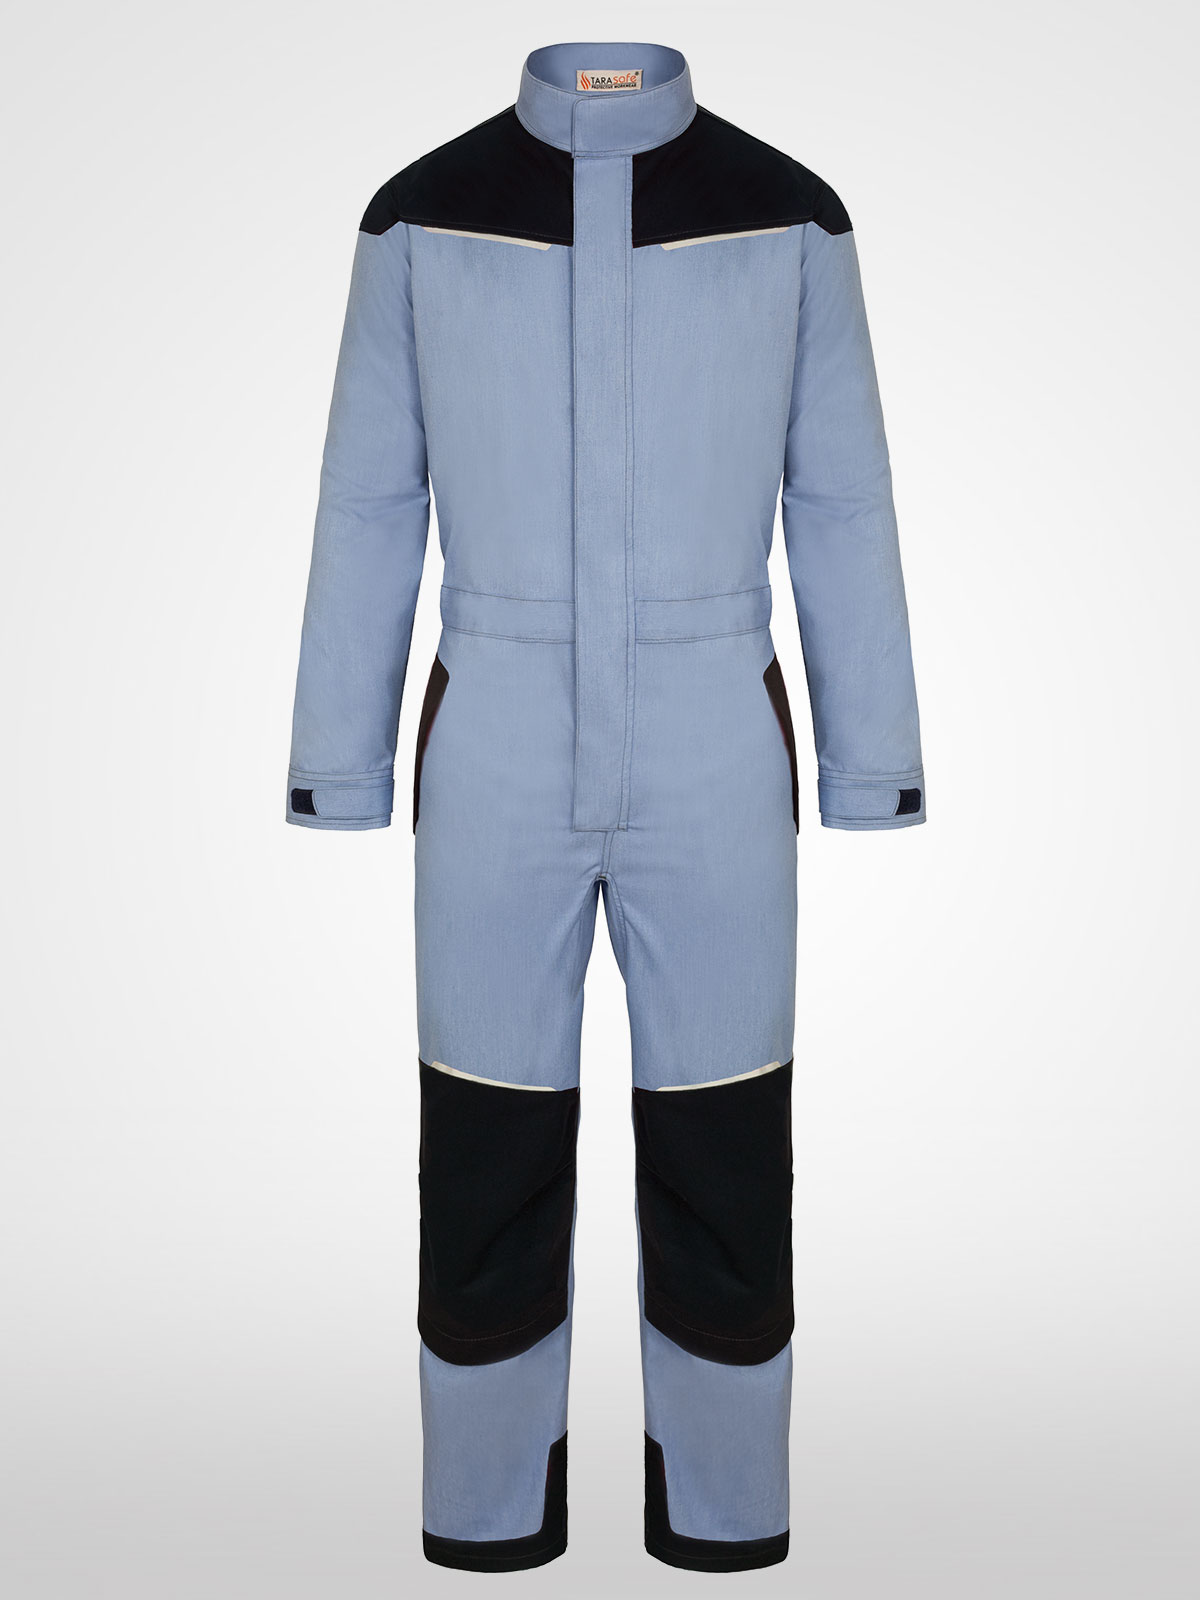 Fire Proof Coveralls